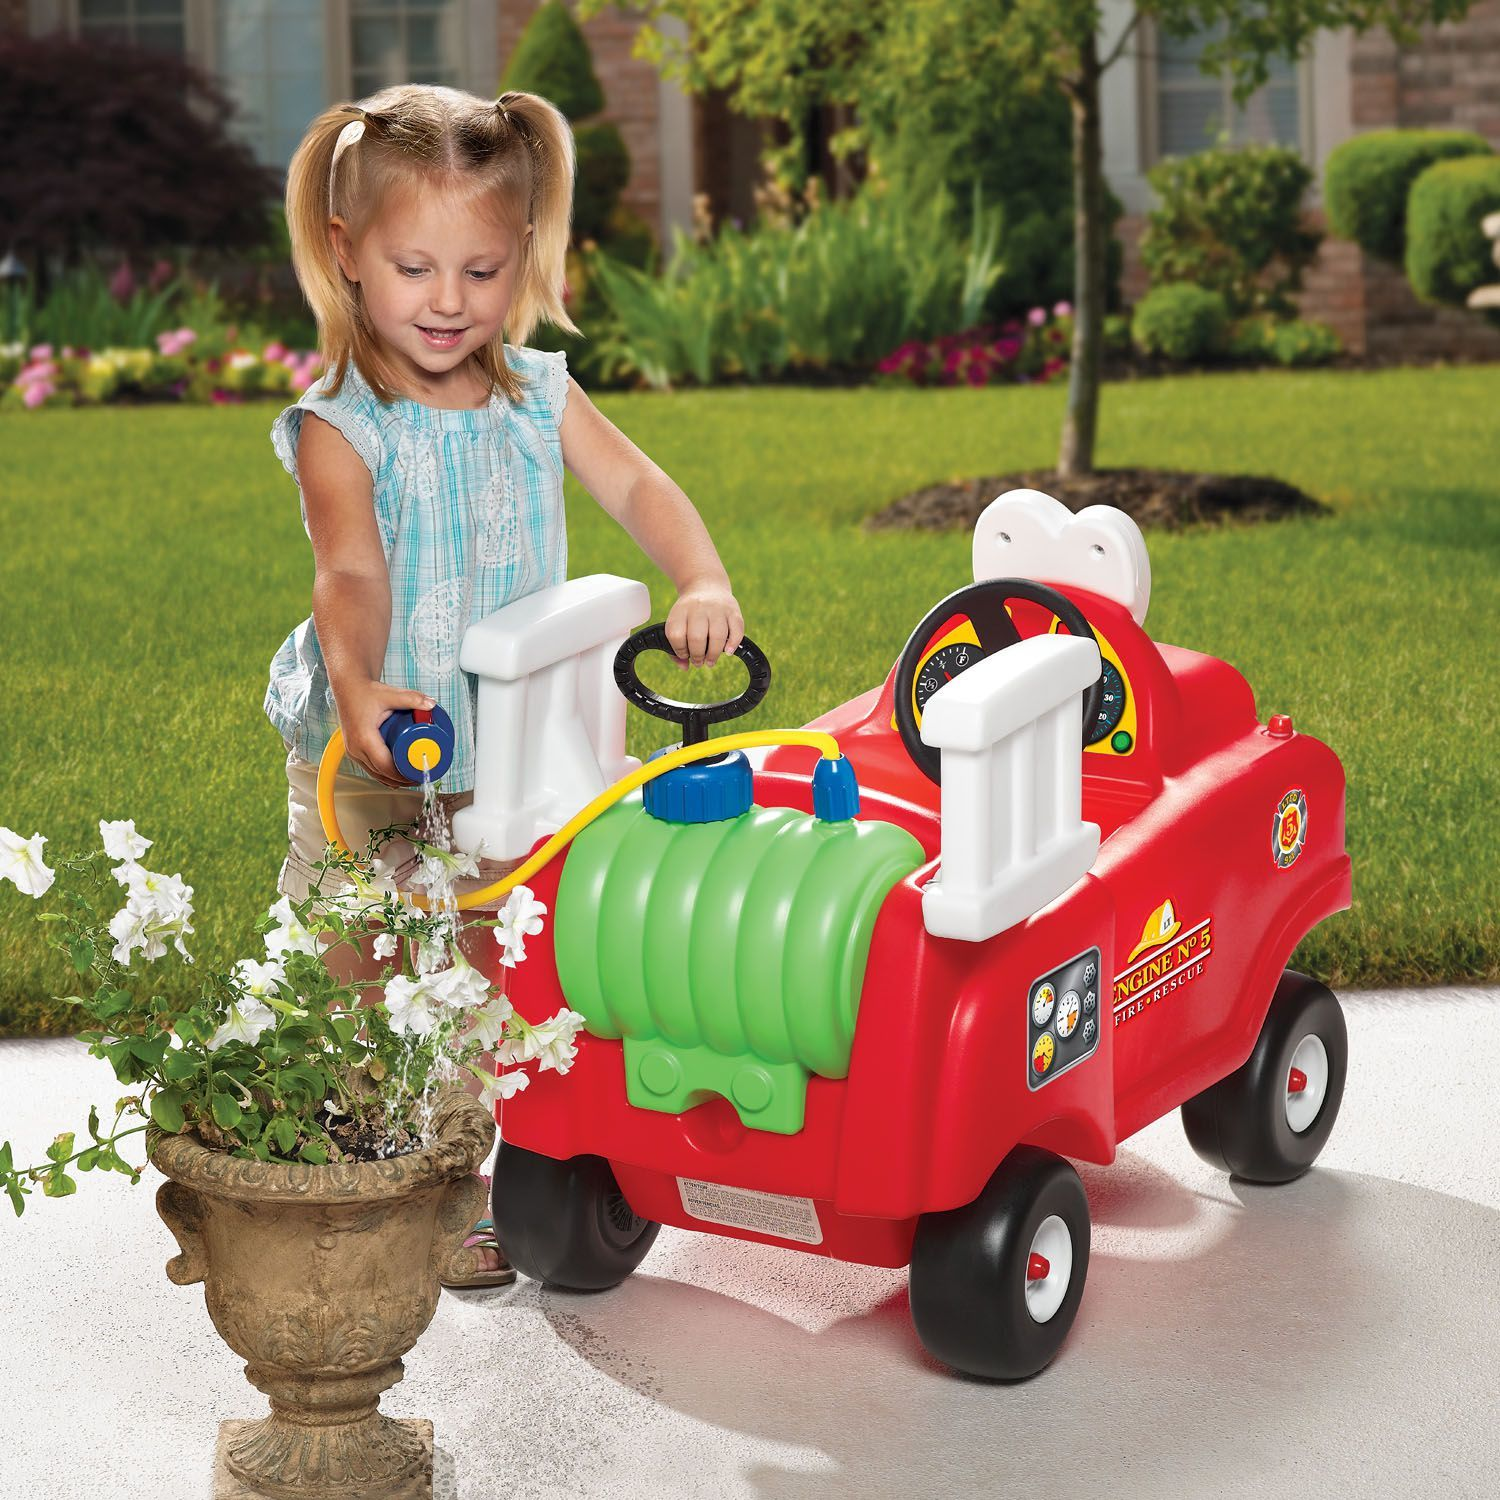 Little Tikes: Spray & Rescue - Fire Truck image